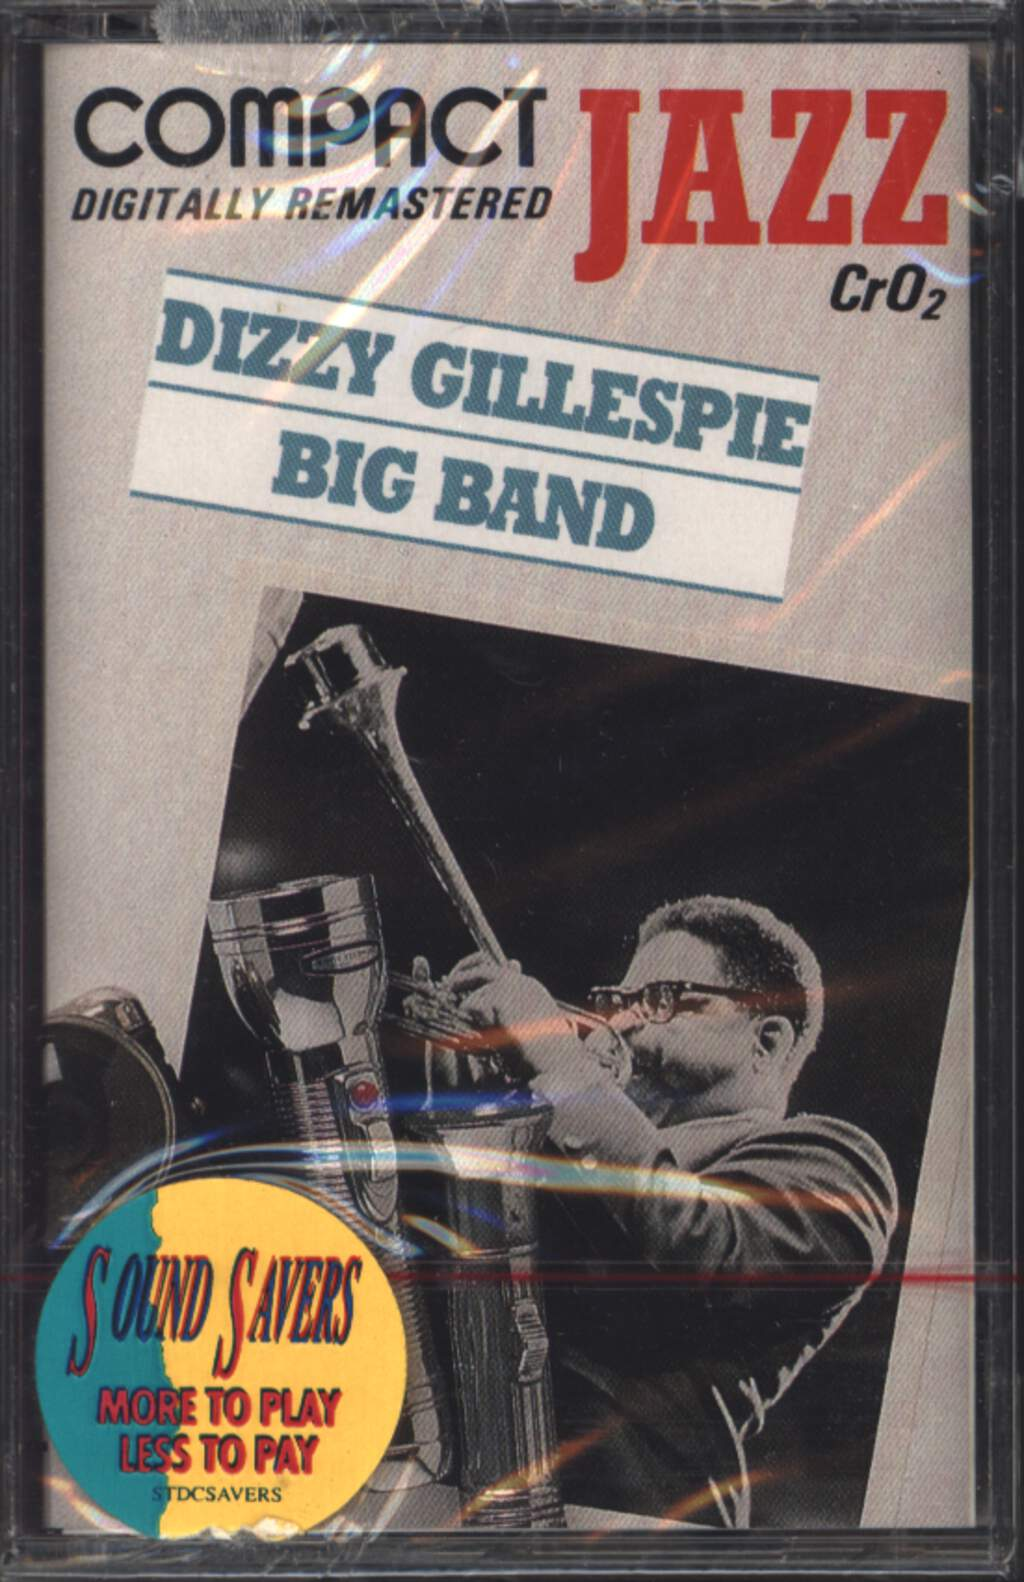 Dizzy Gillespie Big Band: Dizzy Gillespie Big Band, Tape